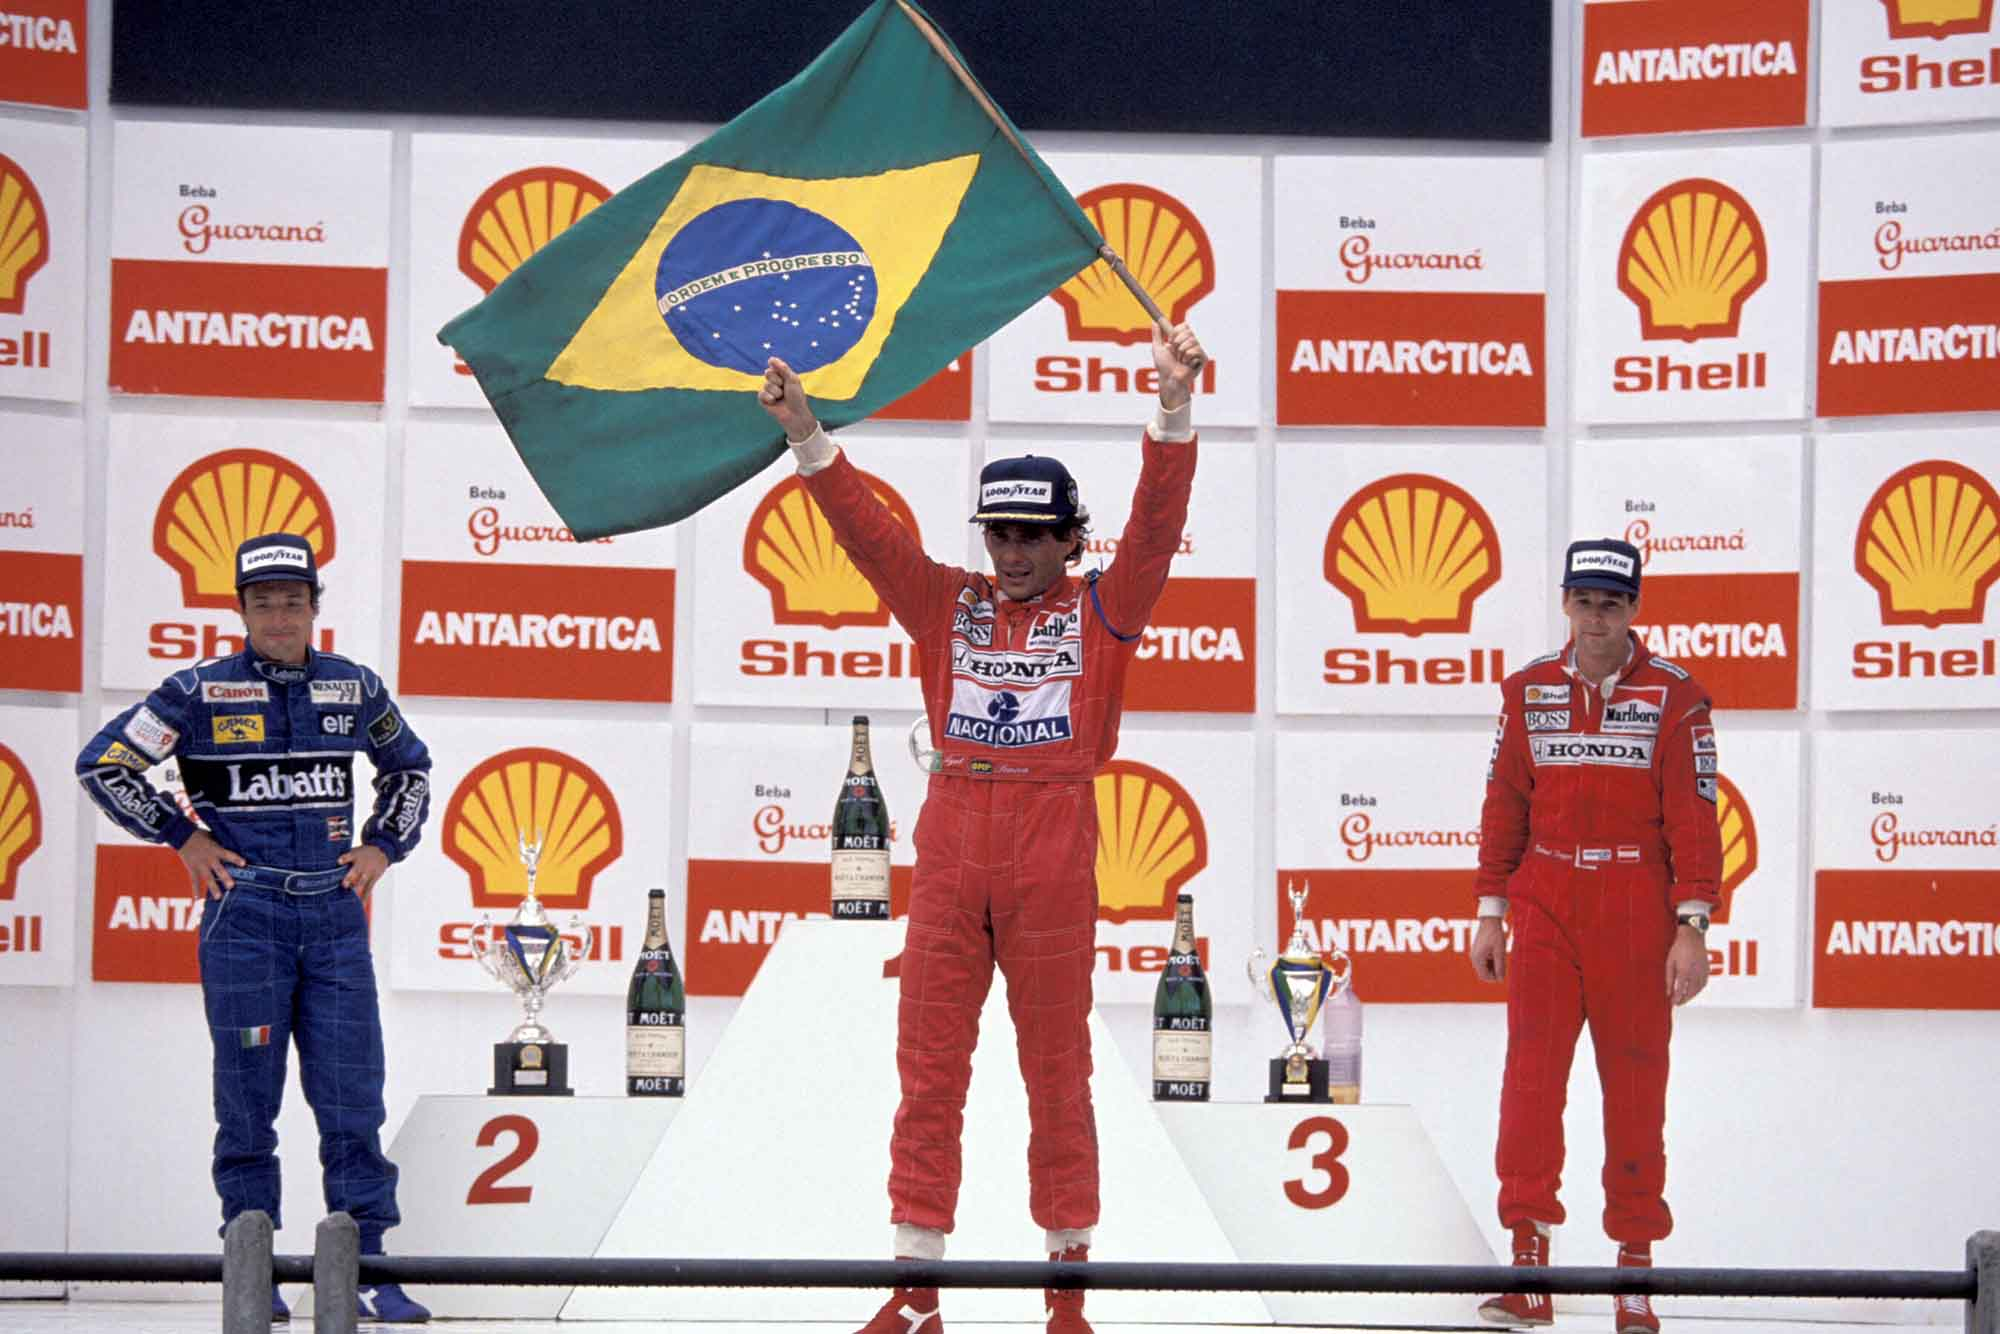 Ayrton Senna on the podium with Riccardo Patrese and Gerhard Berger